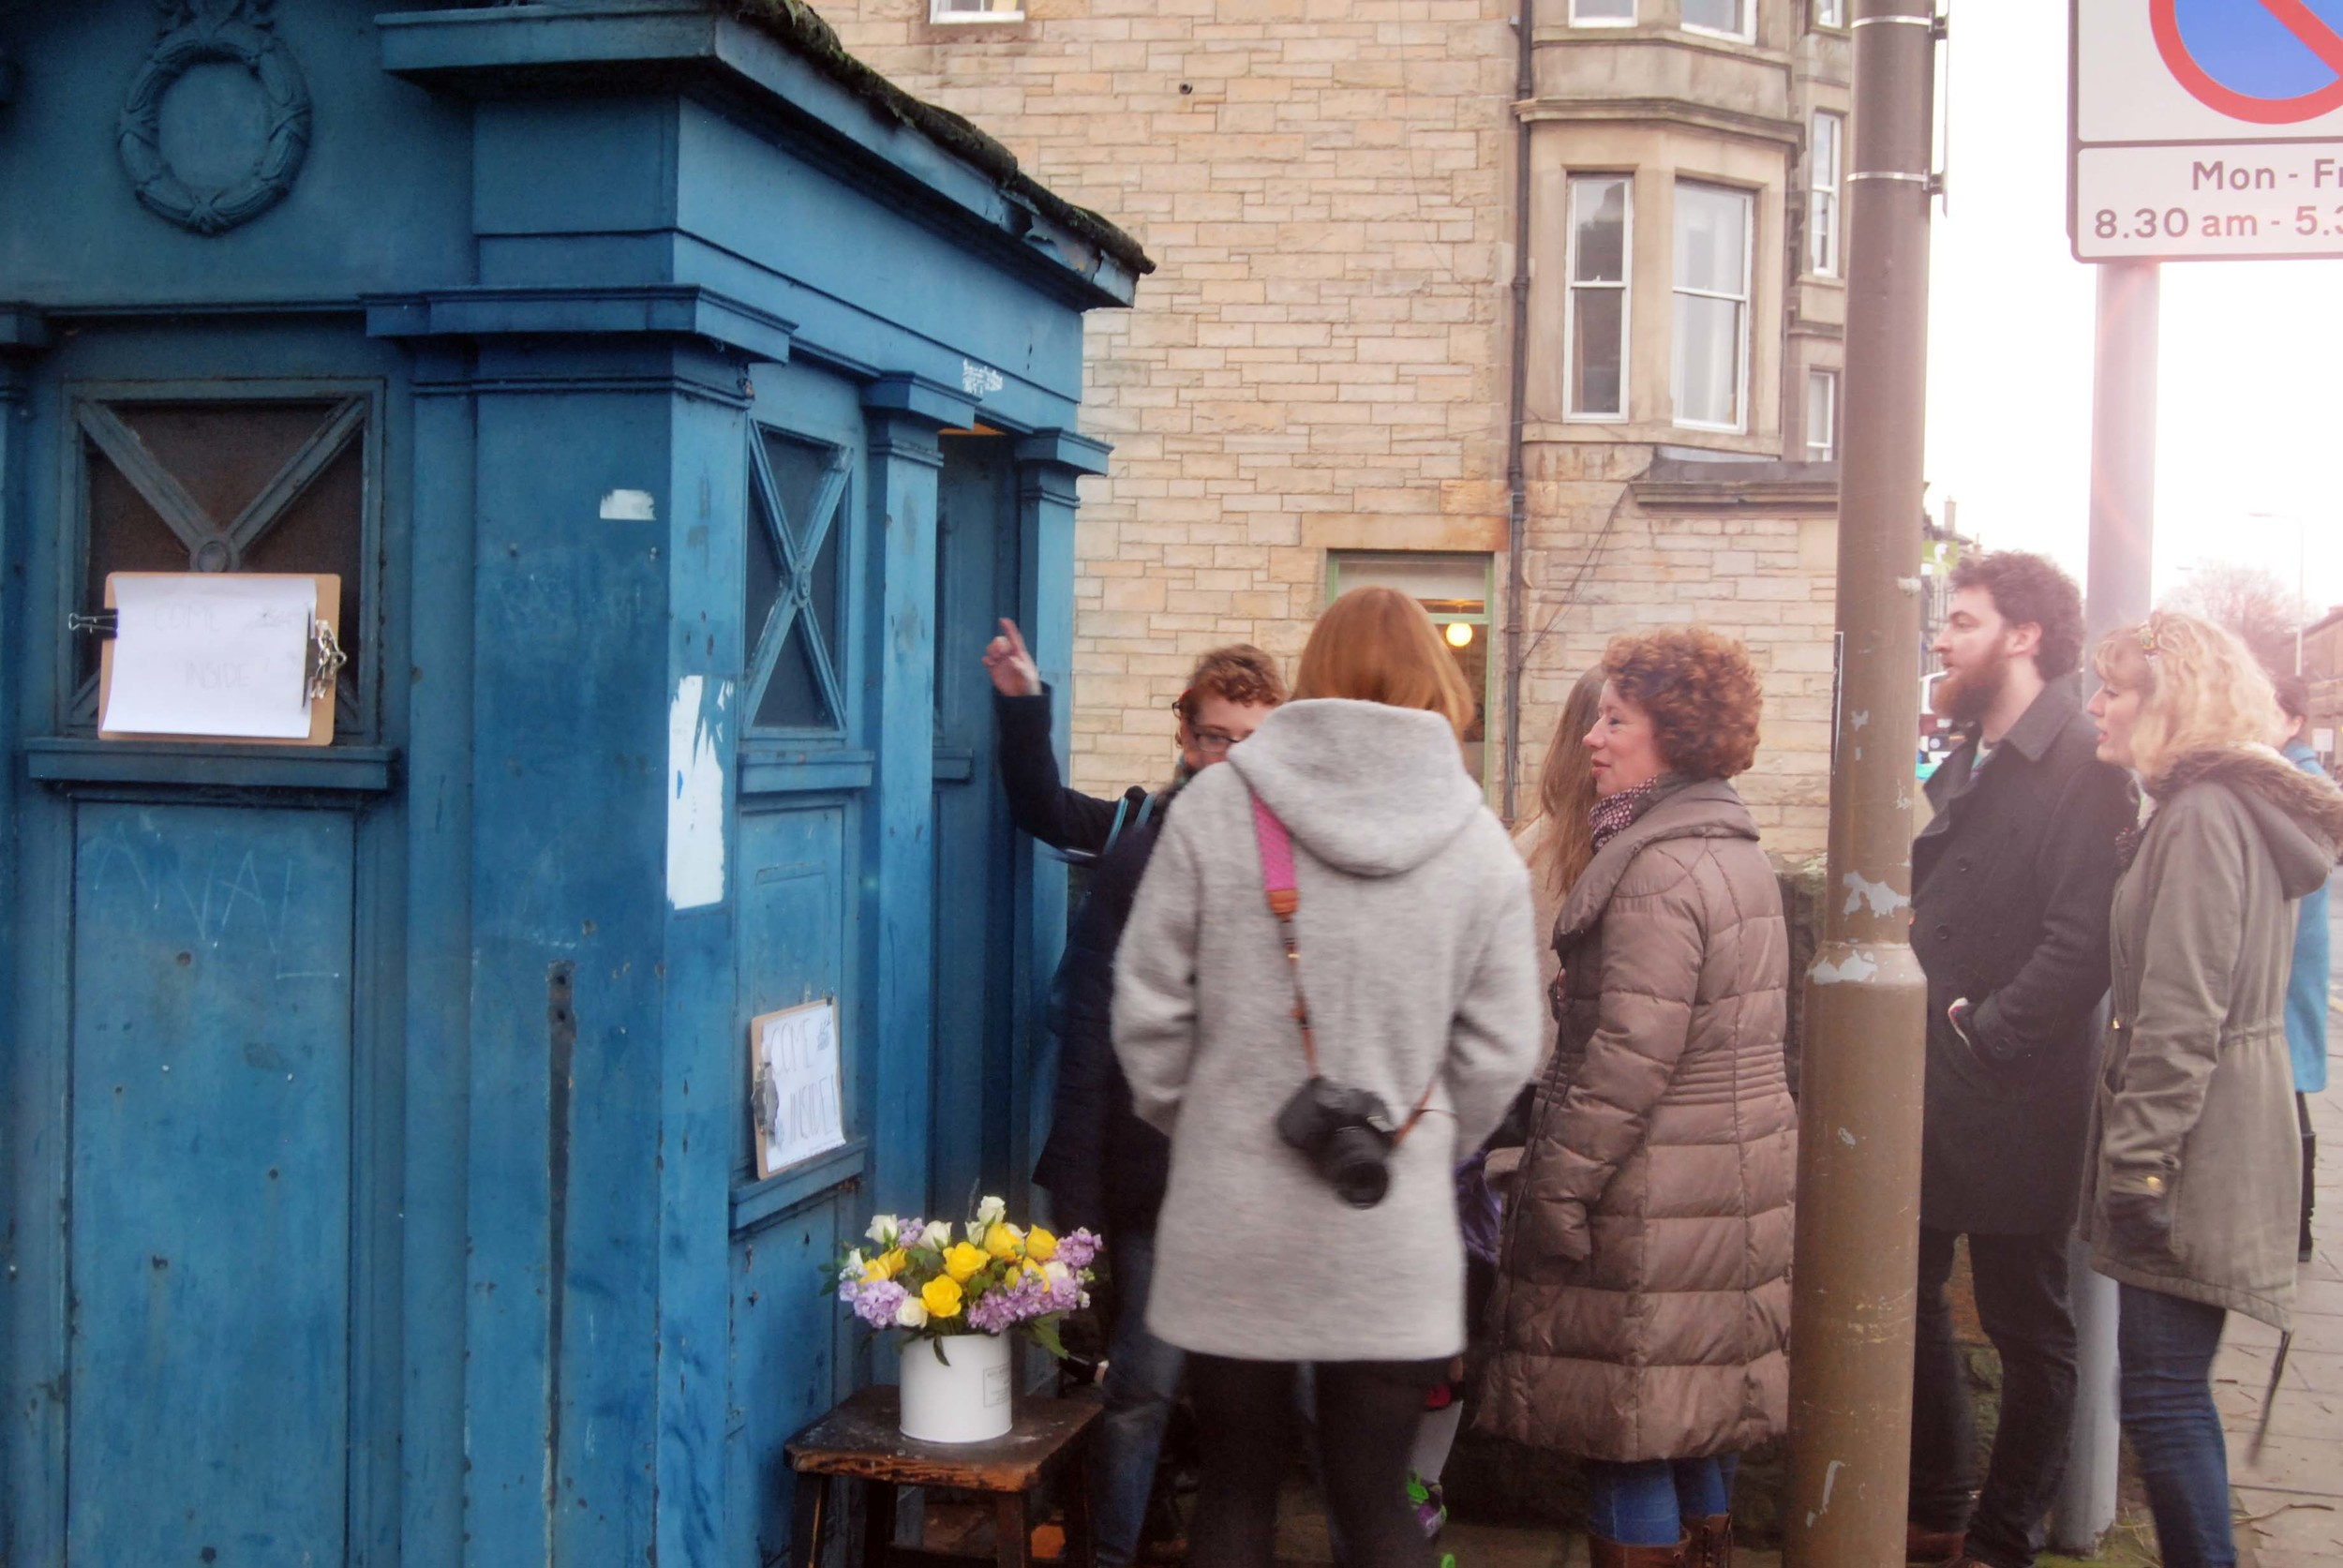 Police Box_Engagement 37 lo res.jpg